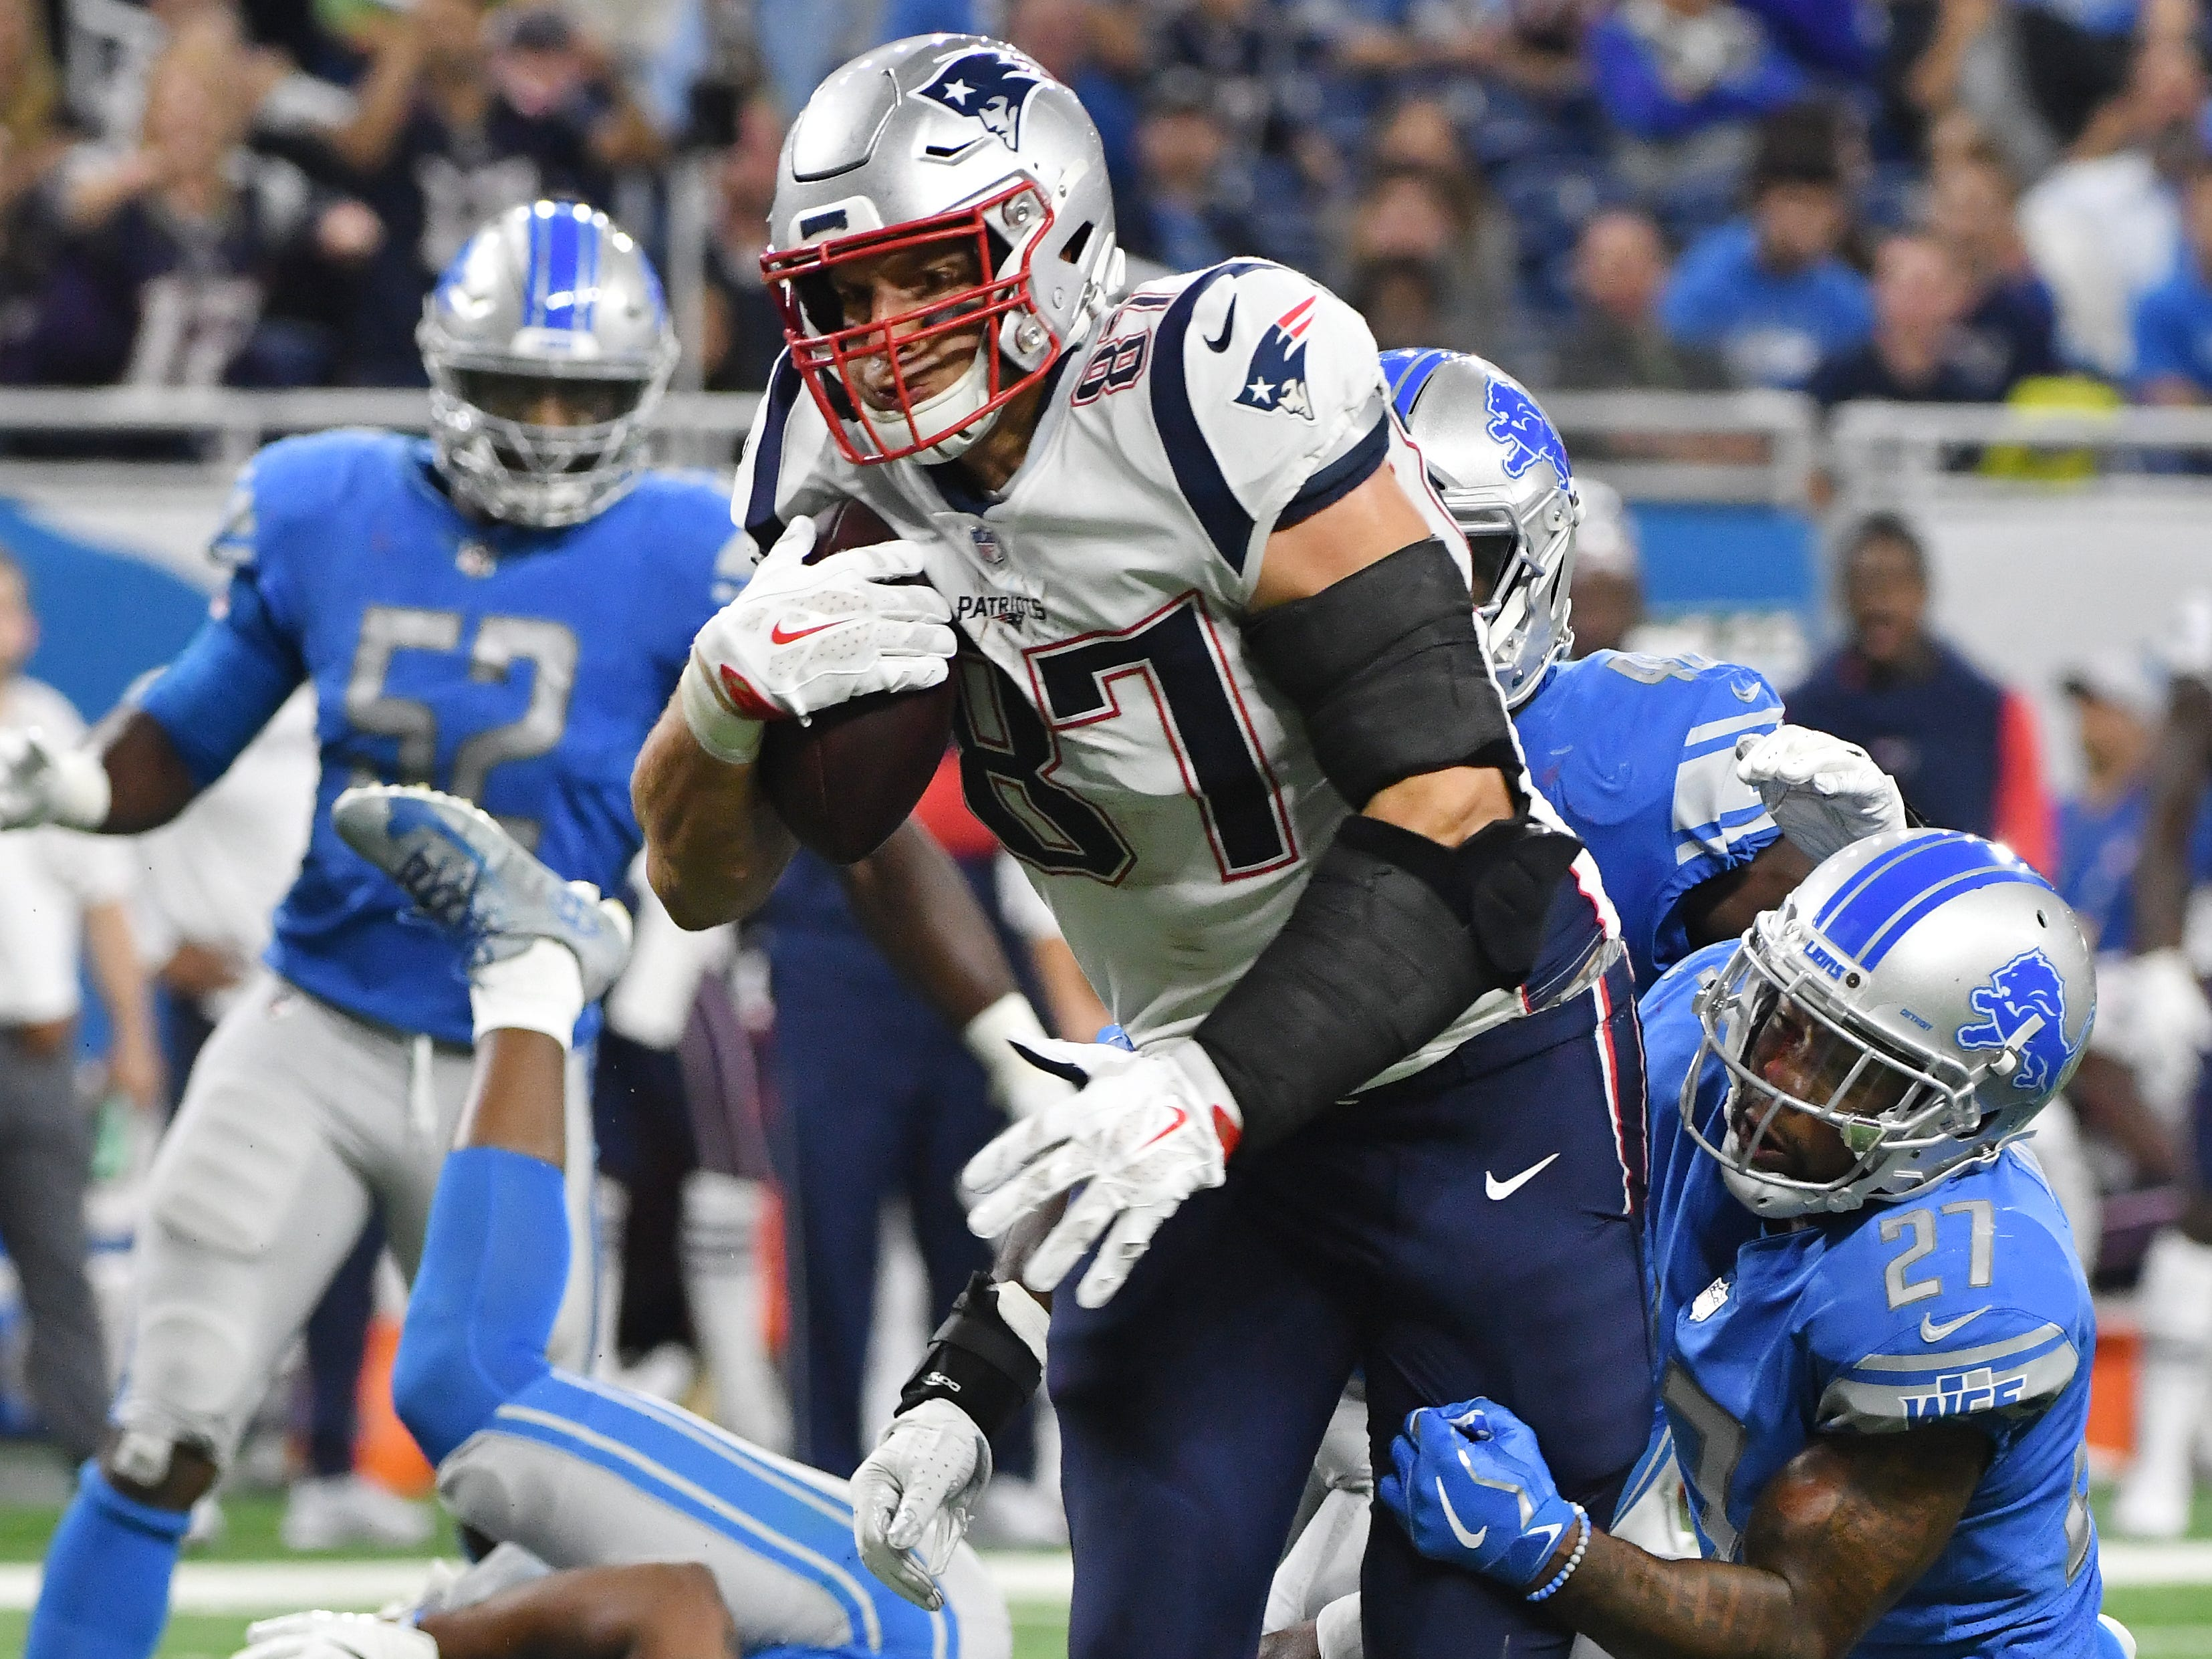 Patriots high end Rob Gronkowski continues upfield after a reception leaving a wake of Lions defensemen in his wake in the 3rd quarter.